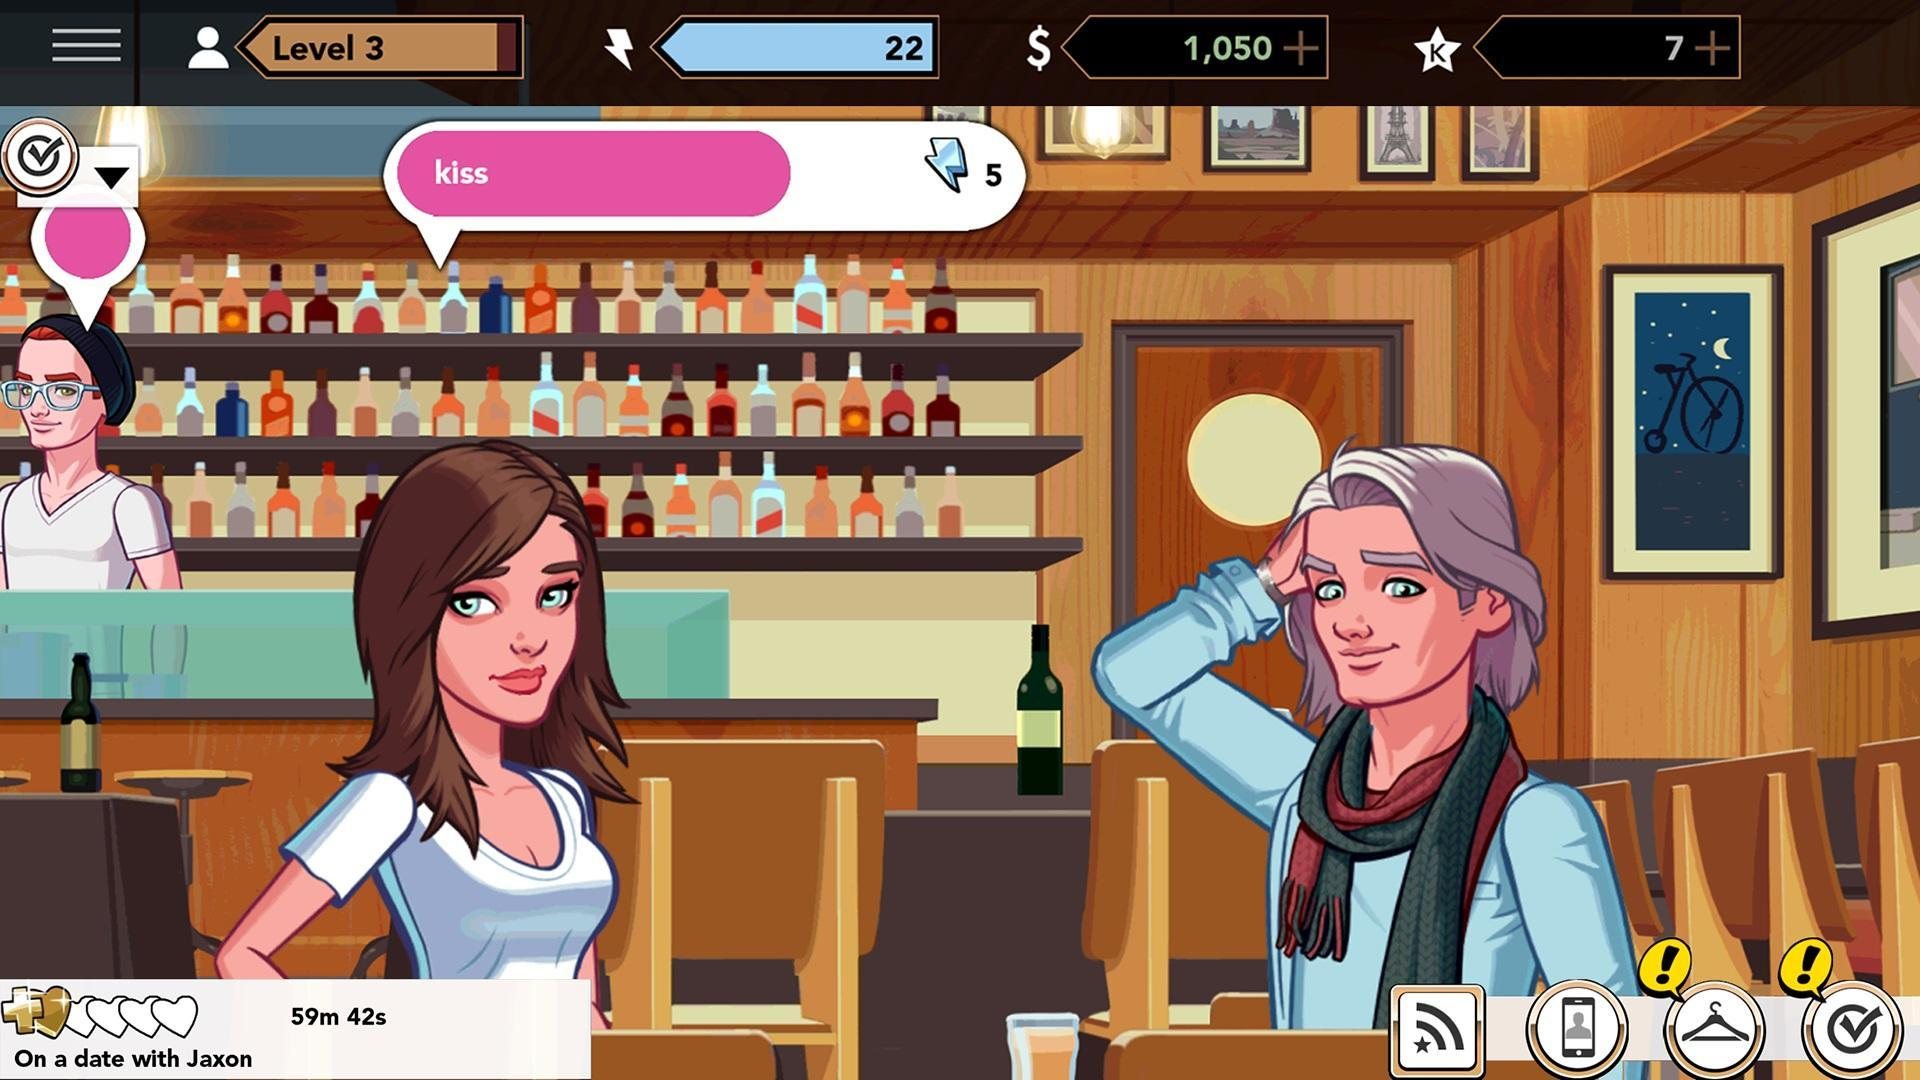 KIM KARDASHIAN: HOLLYWOOD 11.4.1 Screenshot 15